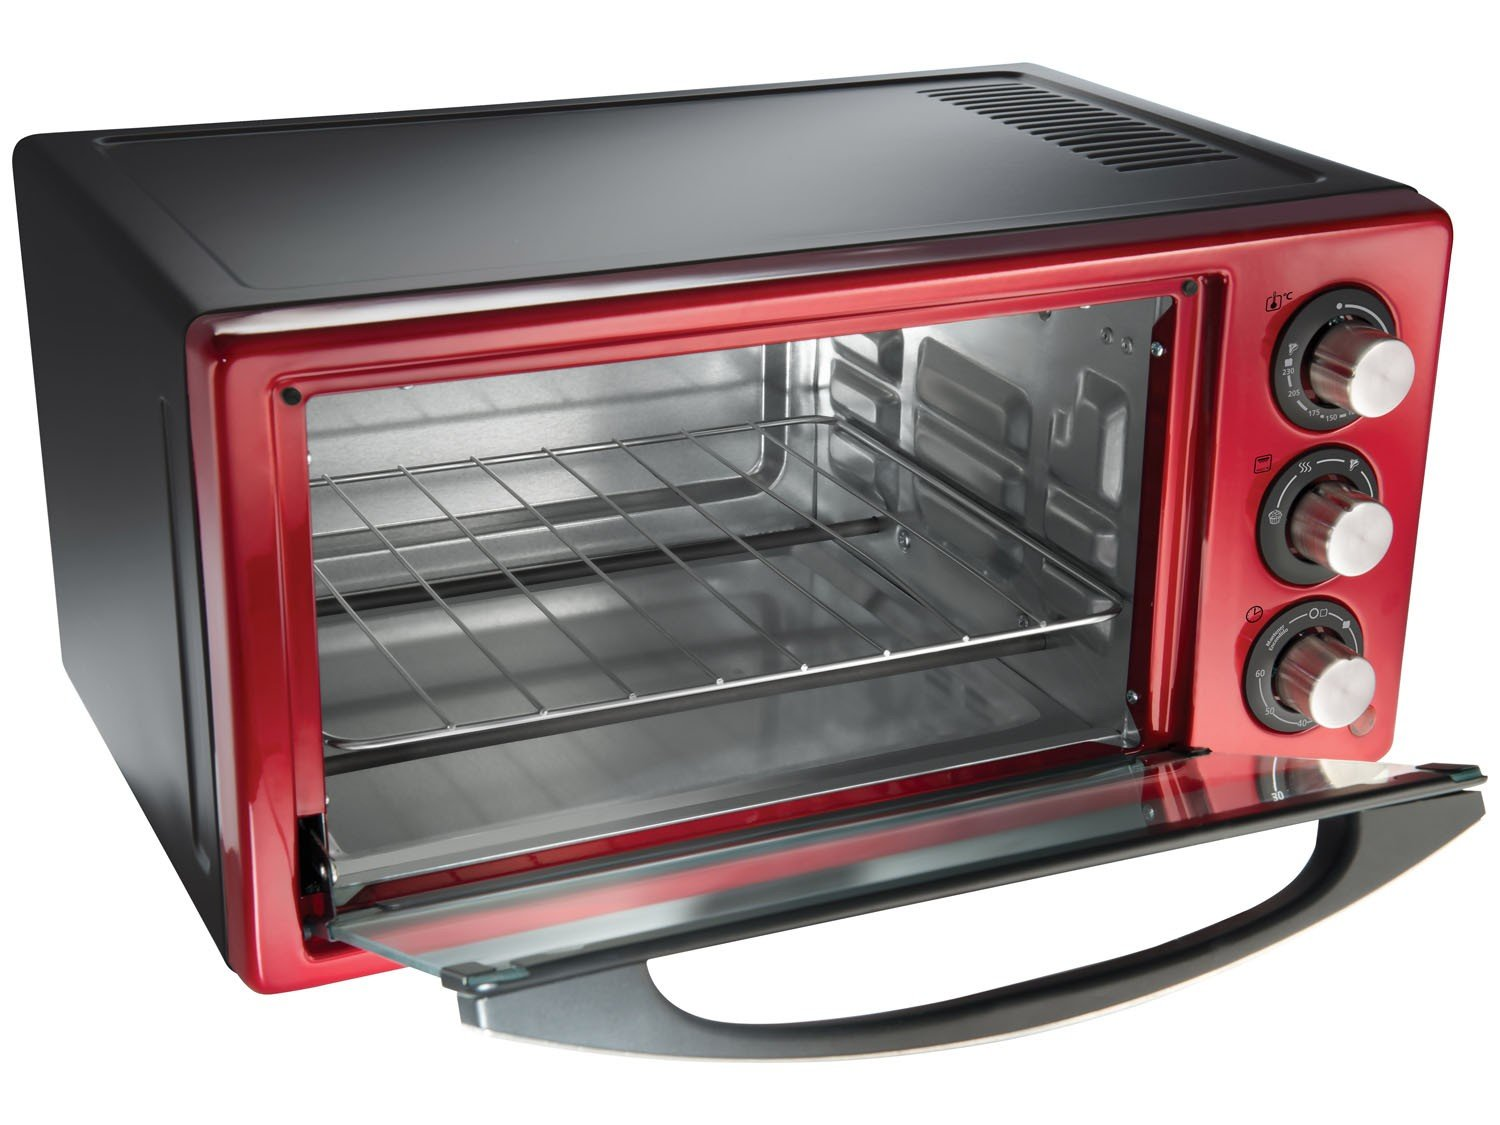 Foto 3 - Forno Elétrico Oster Convection Cook 18L Grill - Timer